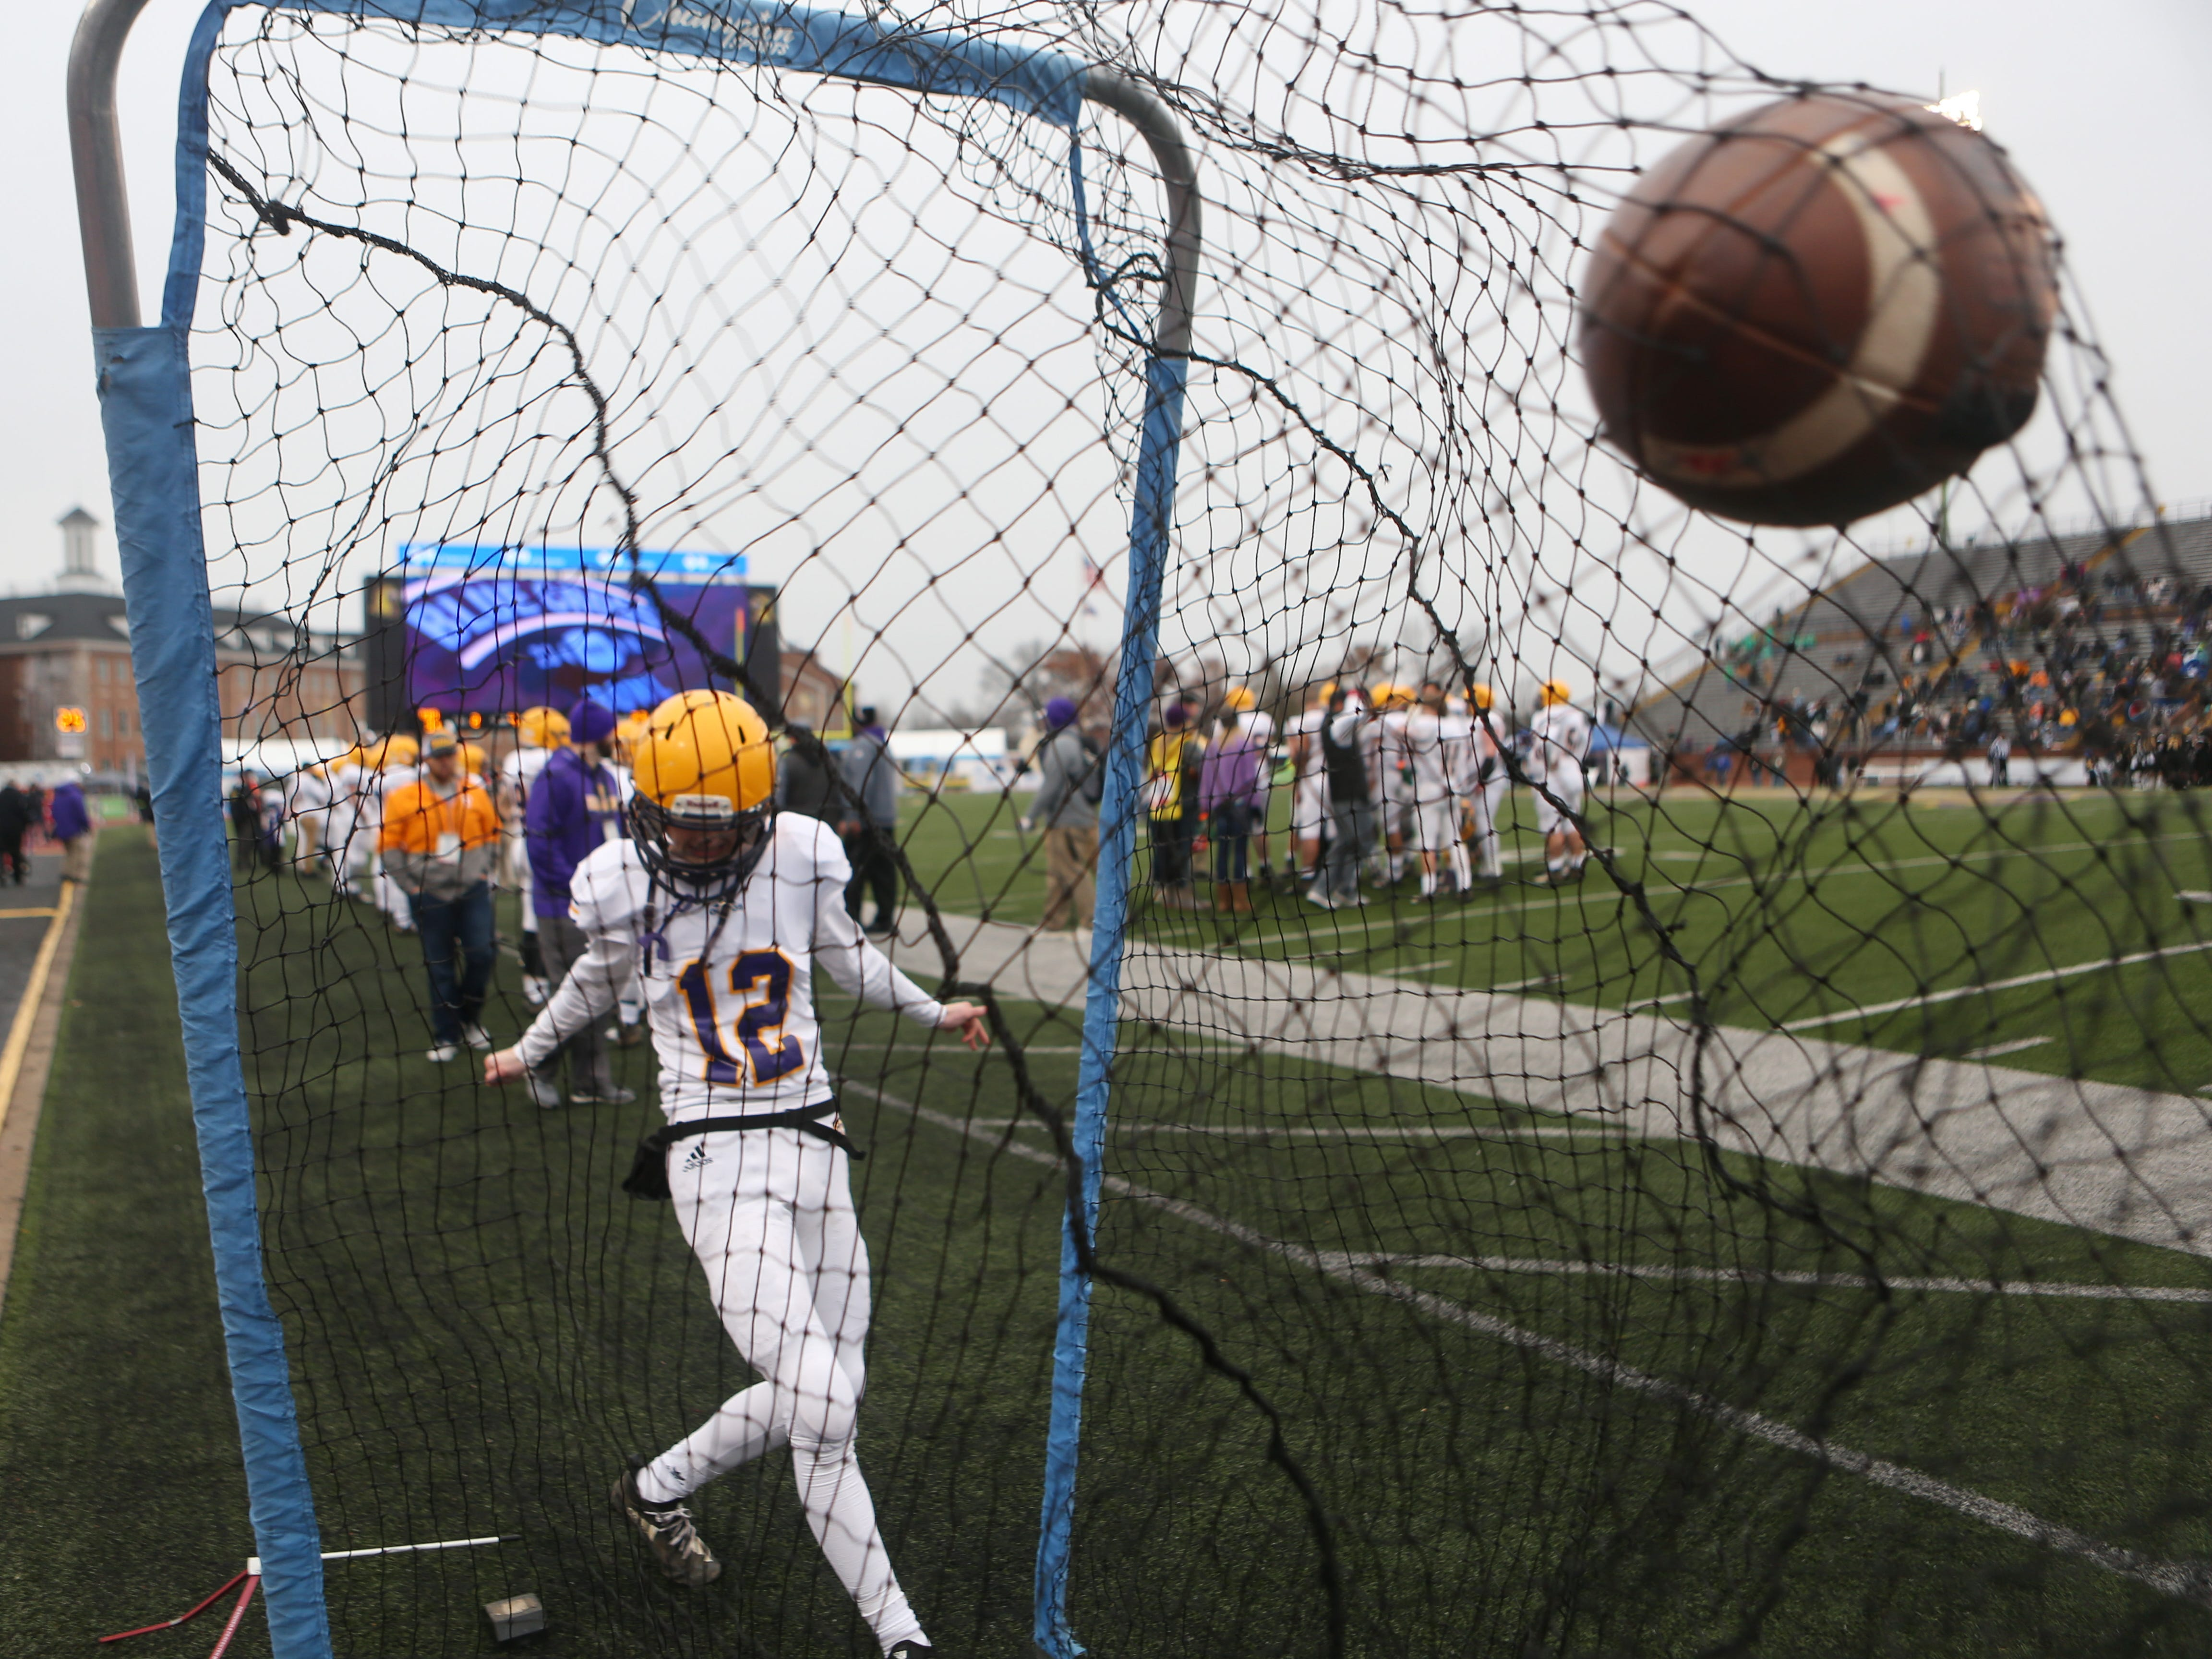 Trousdale's Heath Chasse (12) gets in some kicks along the sideline during the Class 2A BlueCross Bowl state championship at Tennessee Tech's Tucker Stadium in Cookeville, Tenn., on Thursday, Nov. 29, 2018.